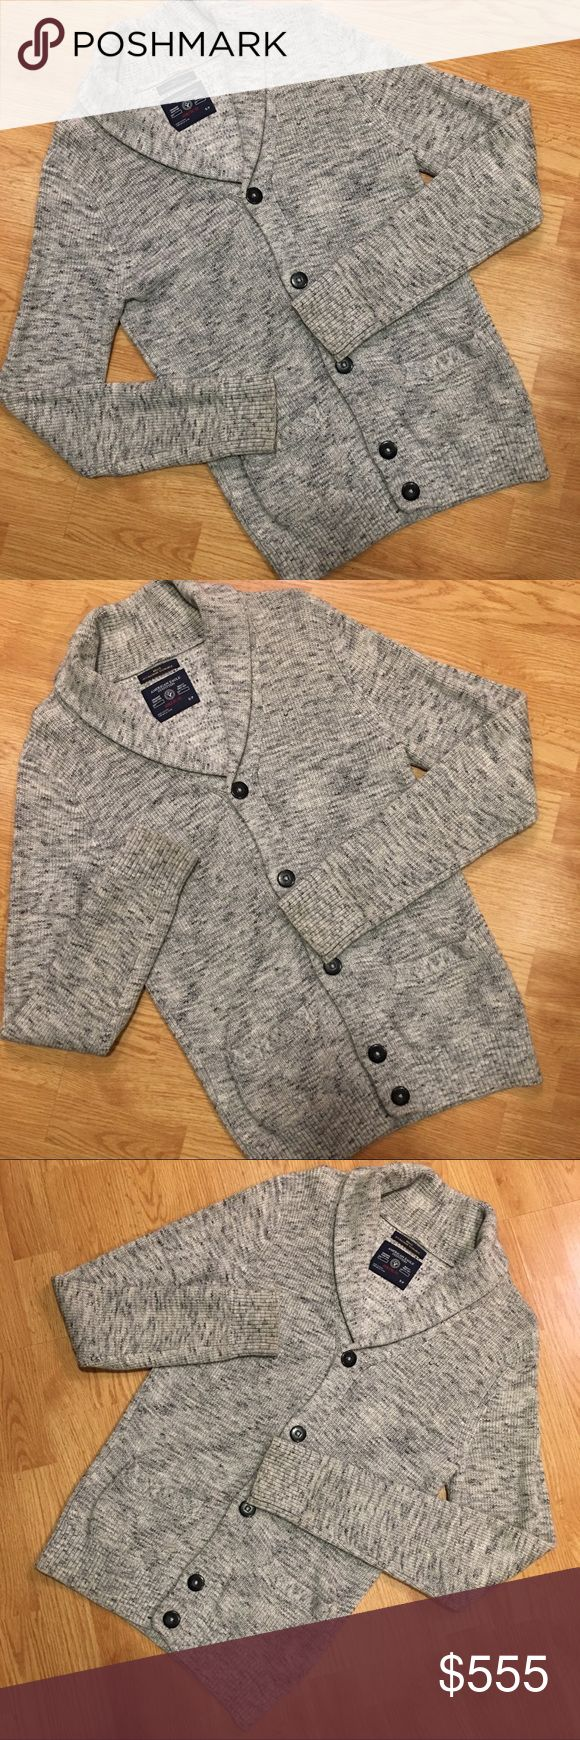 ✅ PREVIEW 🆕 NWT 🚹 American Eagle Men's Cardigan Brand new American Eagle shawl collar cardigan. Six button front (comes with extra button). Marled gray and cream cotton knit is machine washable. Ribbed at wrists and waistline. Two front slide pockets. Great year round sweater. NWT. Reasonable offers welcome. Thanks for your interest. 😊💖 American Eagle Outfitters Sweaters Cardigan